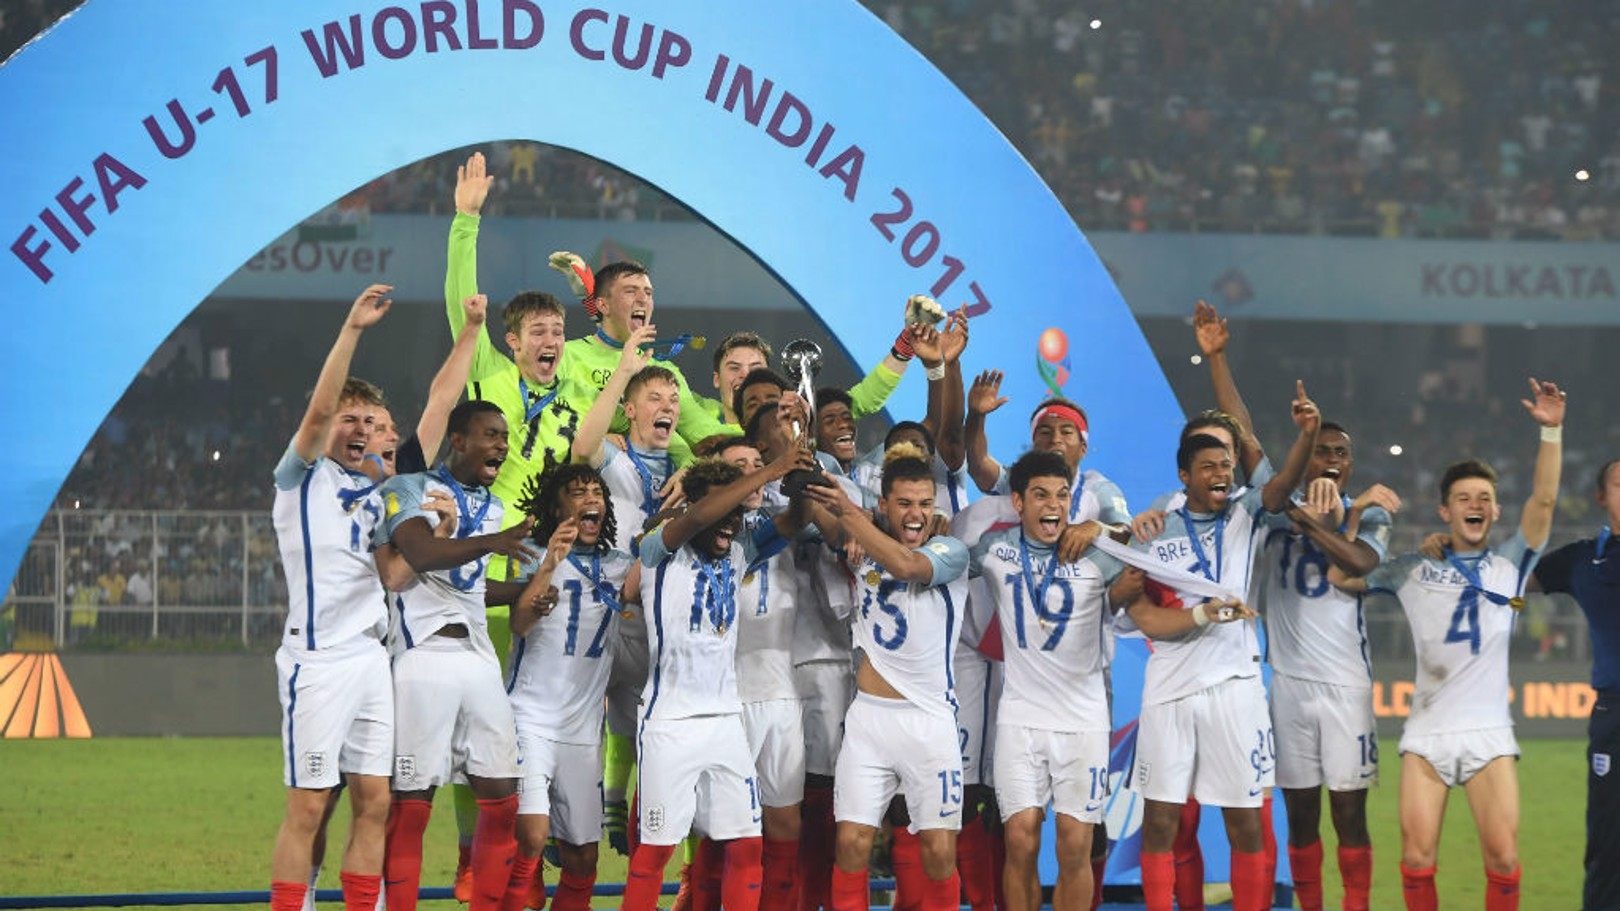 PRIZE GUYS: England U17s lift the World Cup